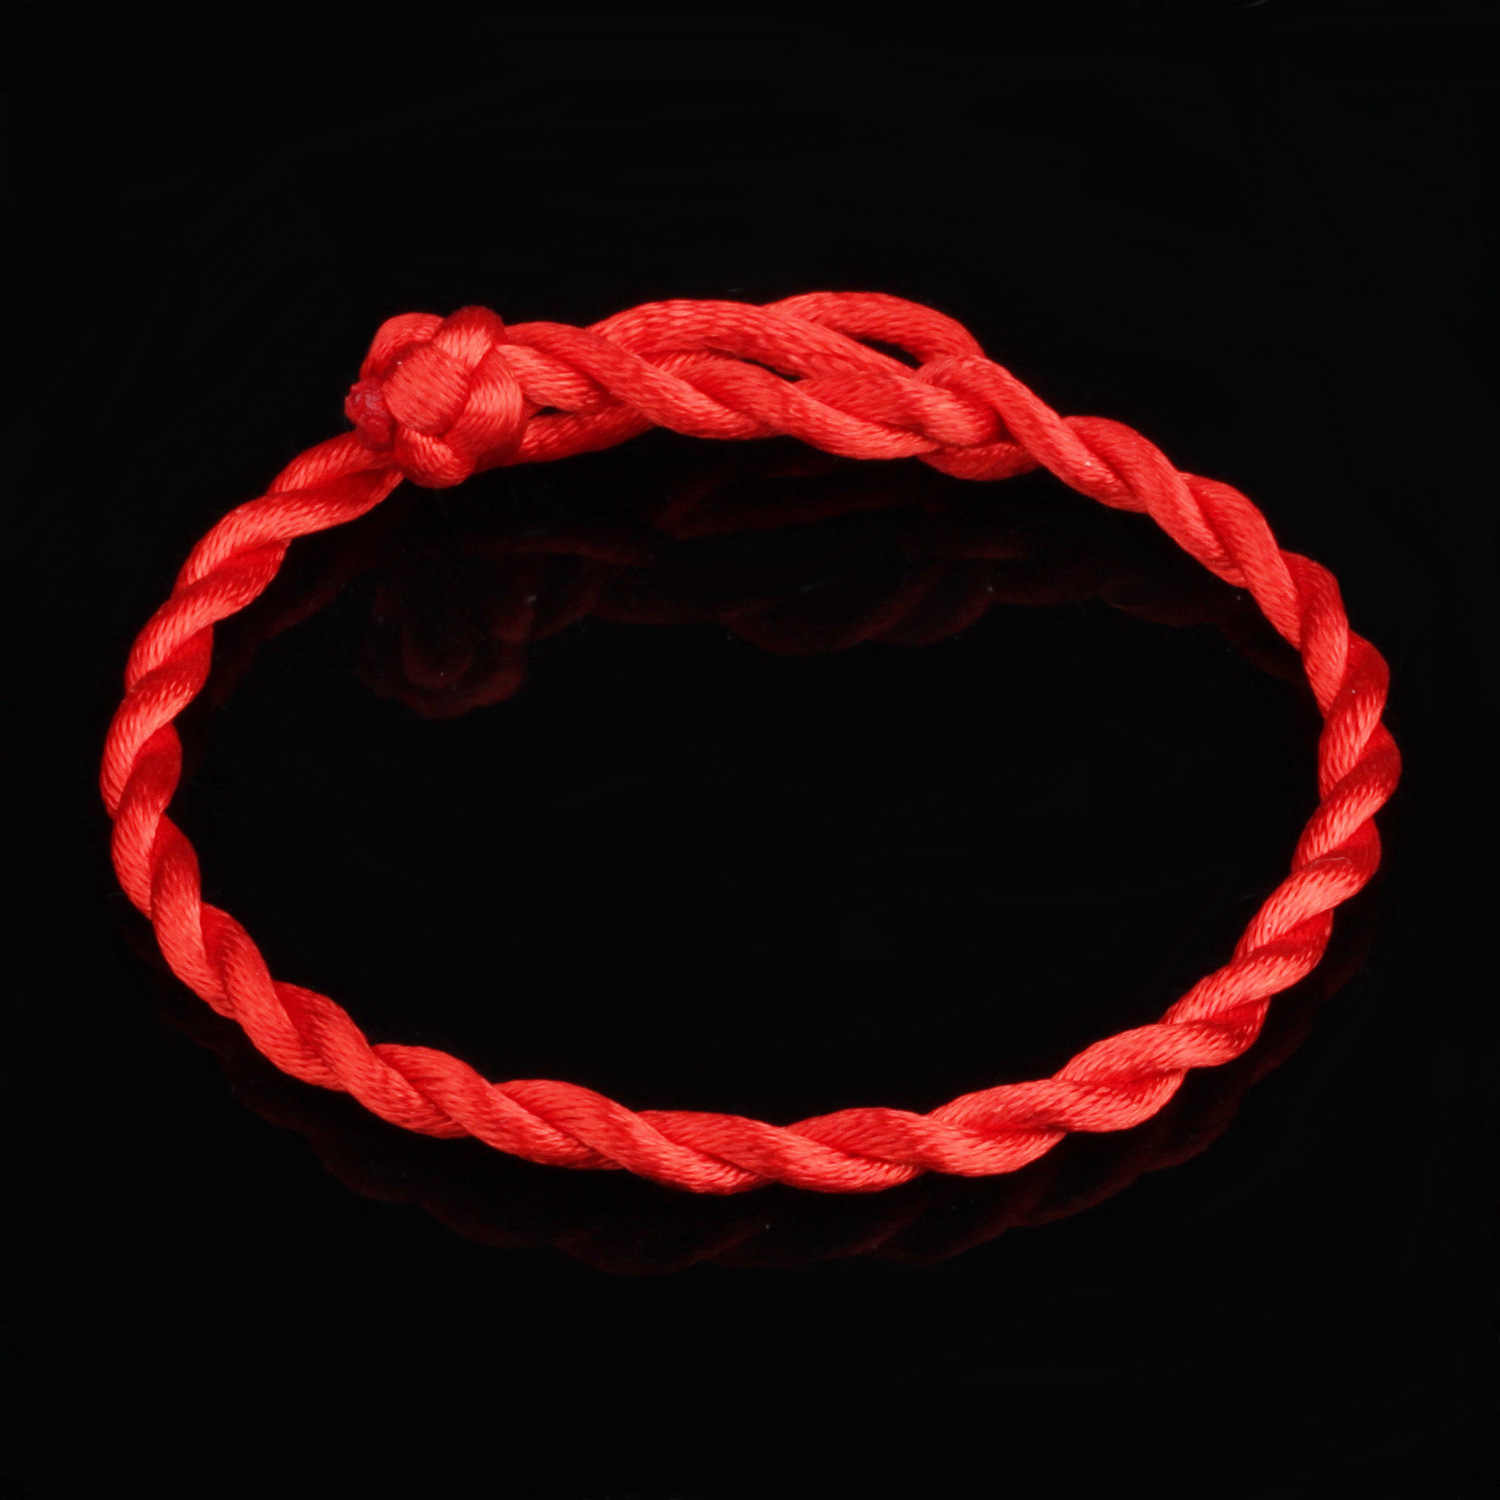 Simple Red Rope Bracelets & Bangles For Women man Children Fashion unisex Jewelry Gift width 4mm/2mm length 20cm